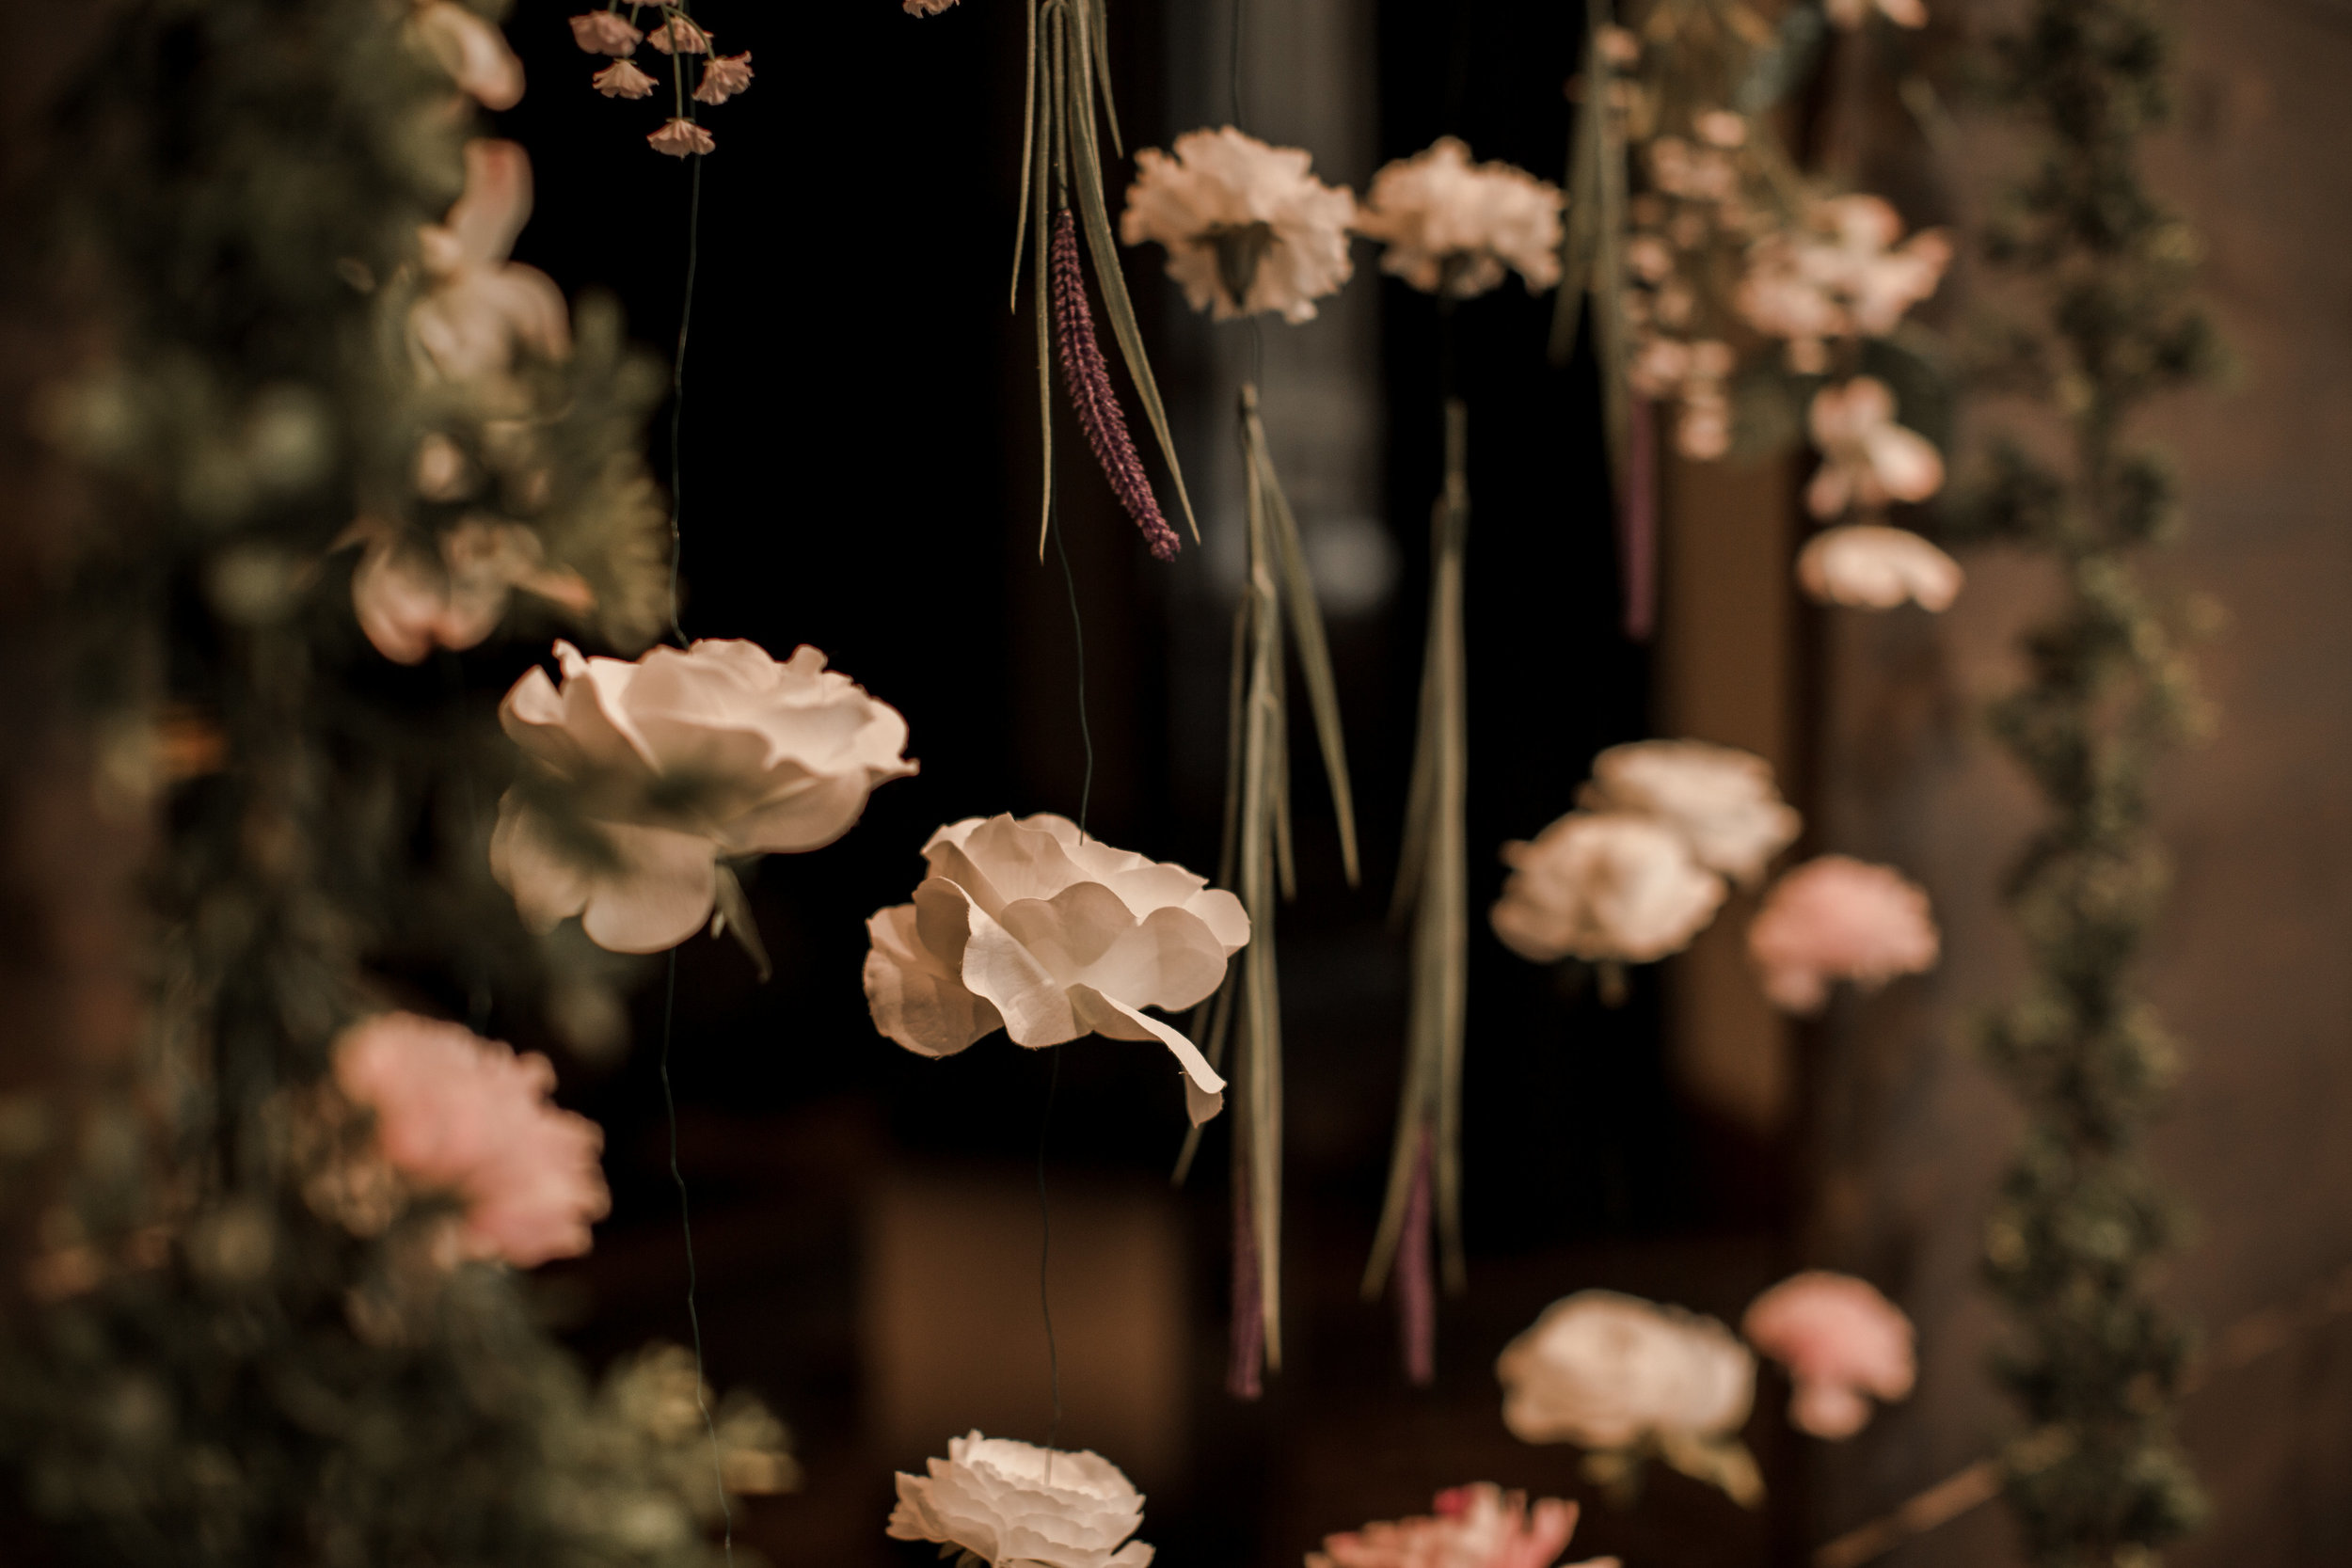 silk-flower-wedding-backgrops.jpg